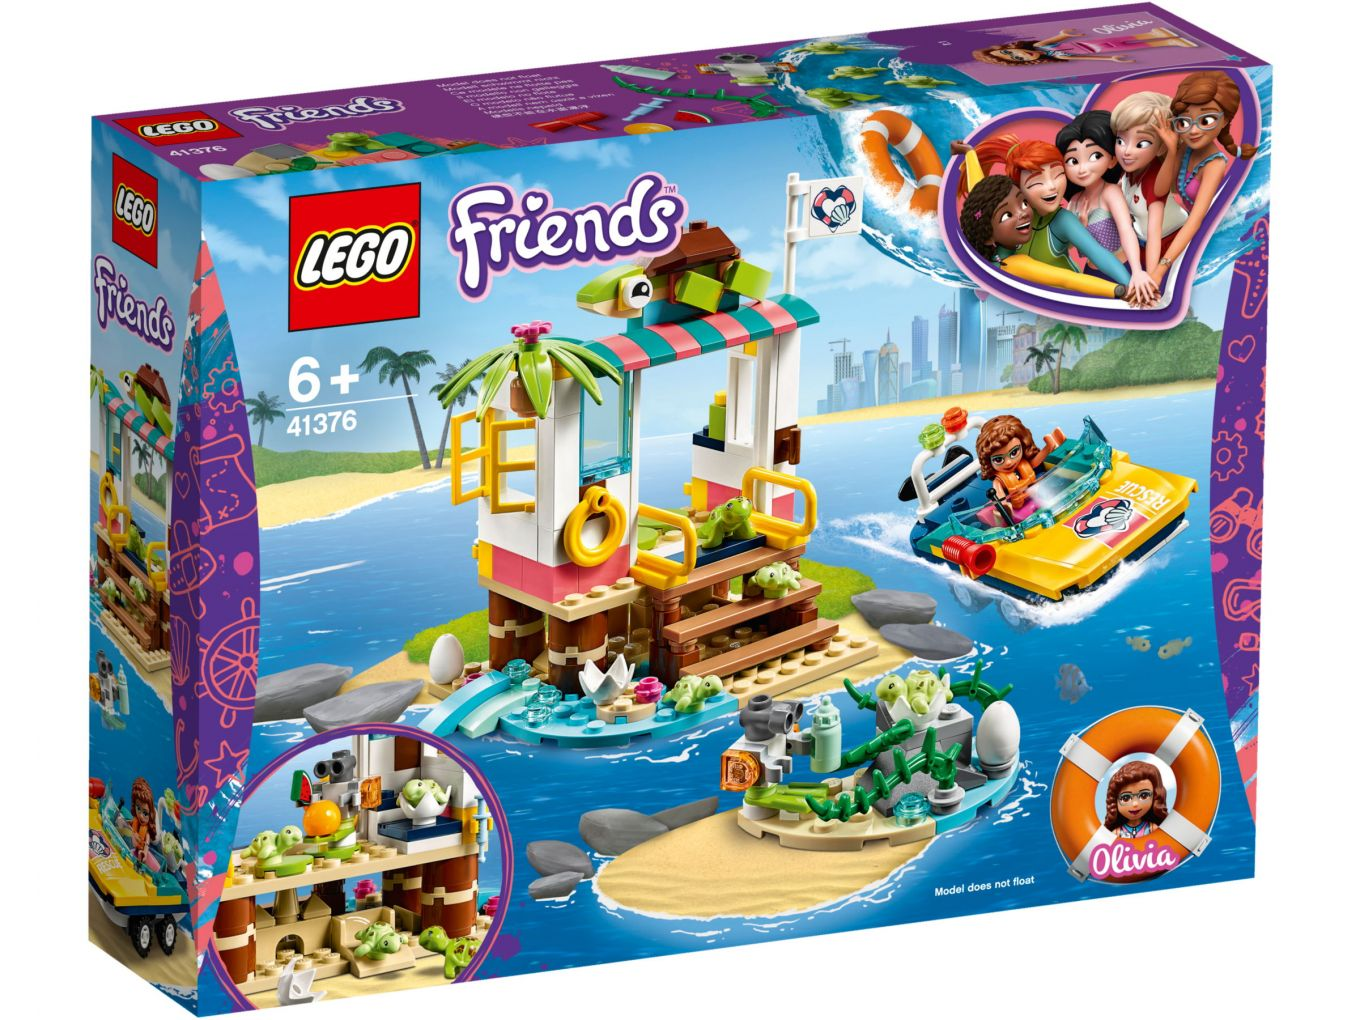 lego-friends-turtle-rescue-41376-2019-box zusammengebaut.com